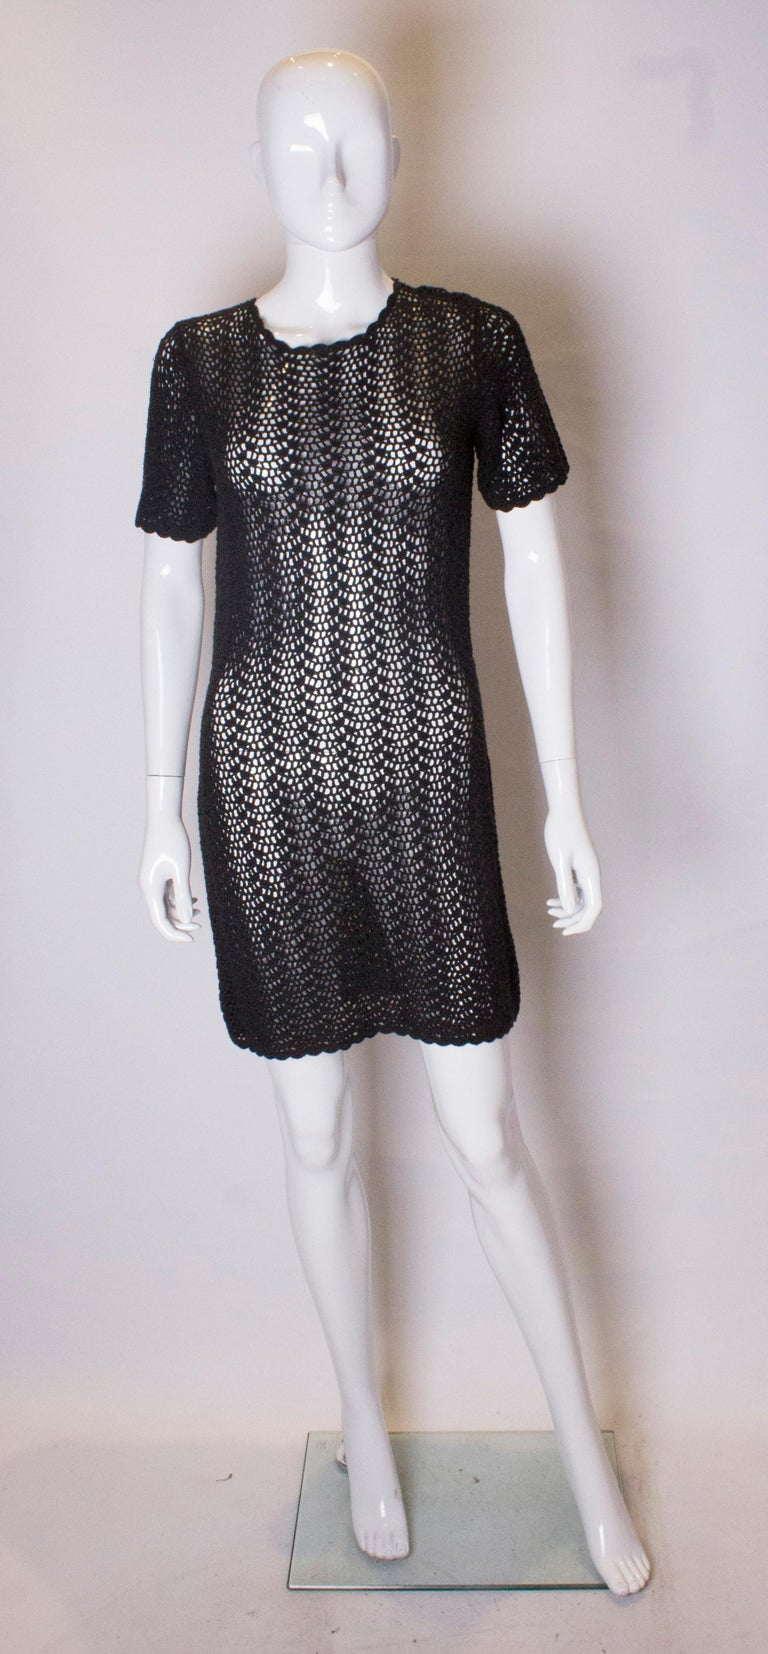 A chic crochet vintage party dress. This black mini dress has cap sleeves and a scallop edge on the hem, neckline and arms.